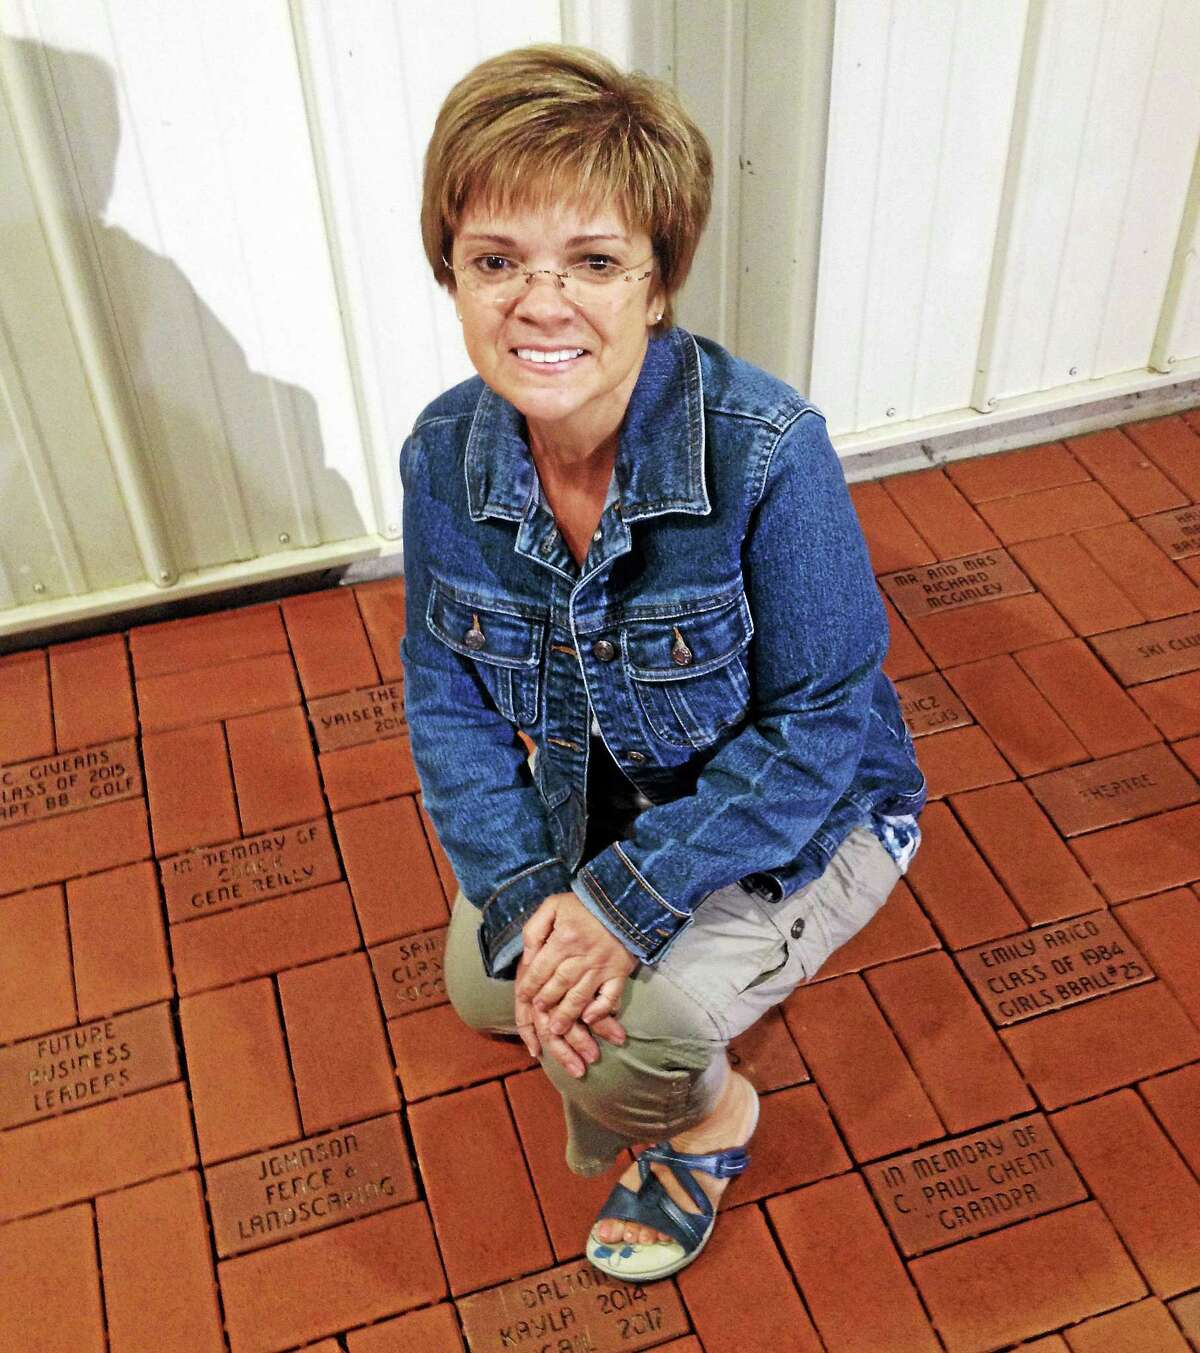 Project Manager Connie Wache shows off the new brick walkway installed in front of the snack bar at the high school athletic fields in Portland, a project of the Sideliners.